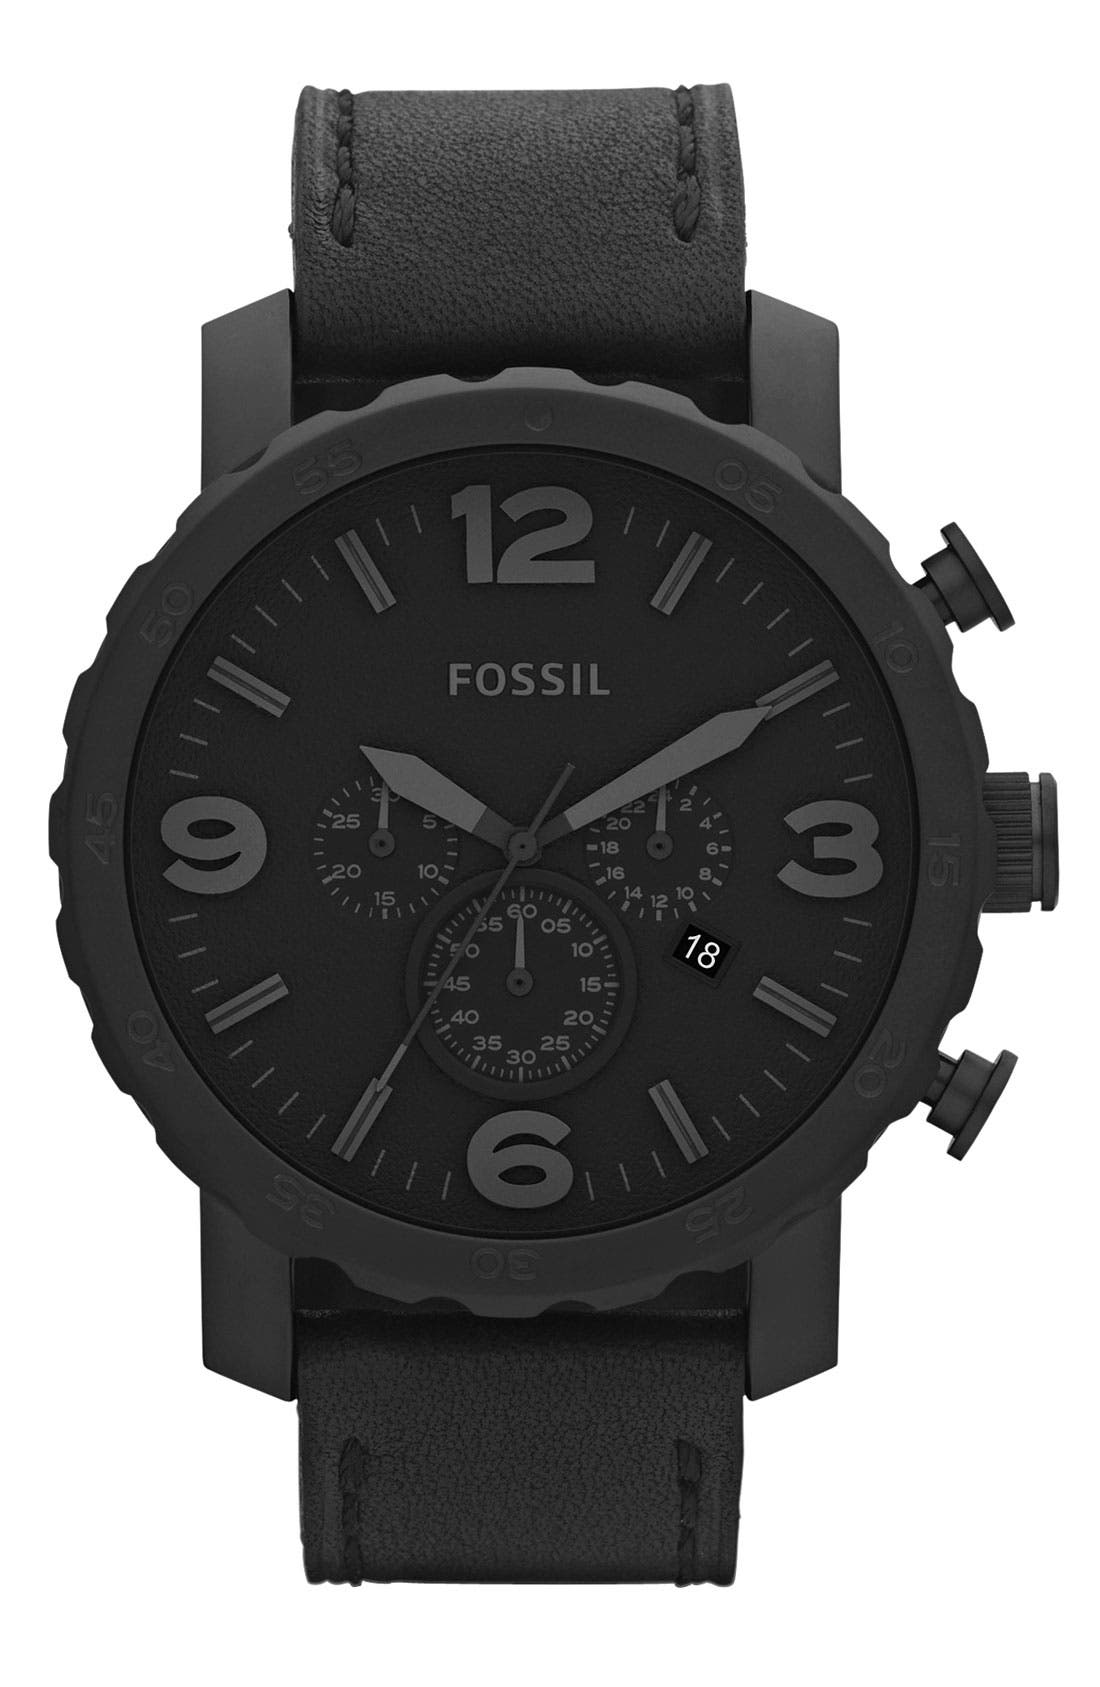 Main Image - Fossil 'Nate IP' Chronograph Watch, 50mm